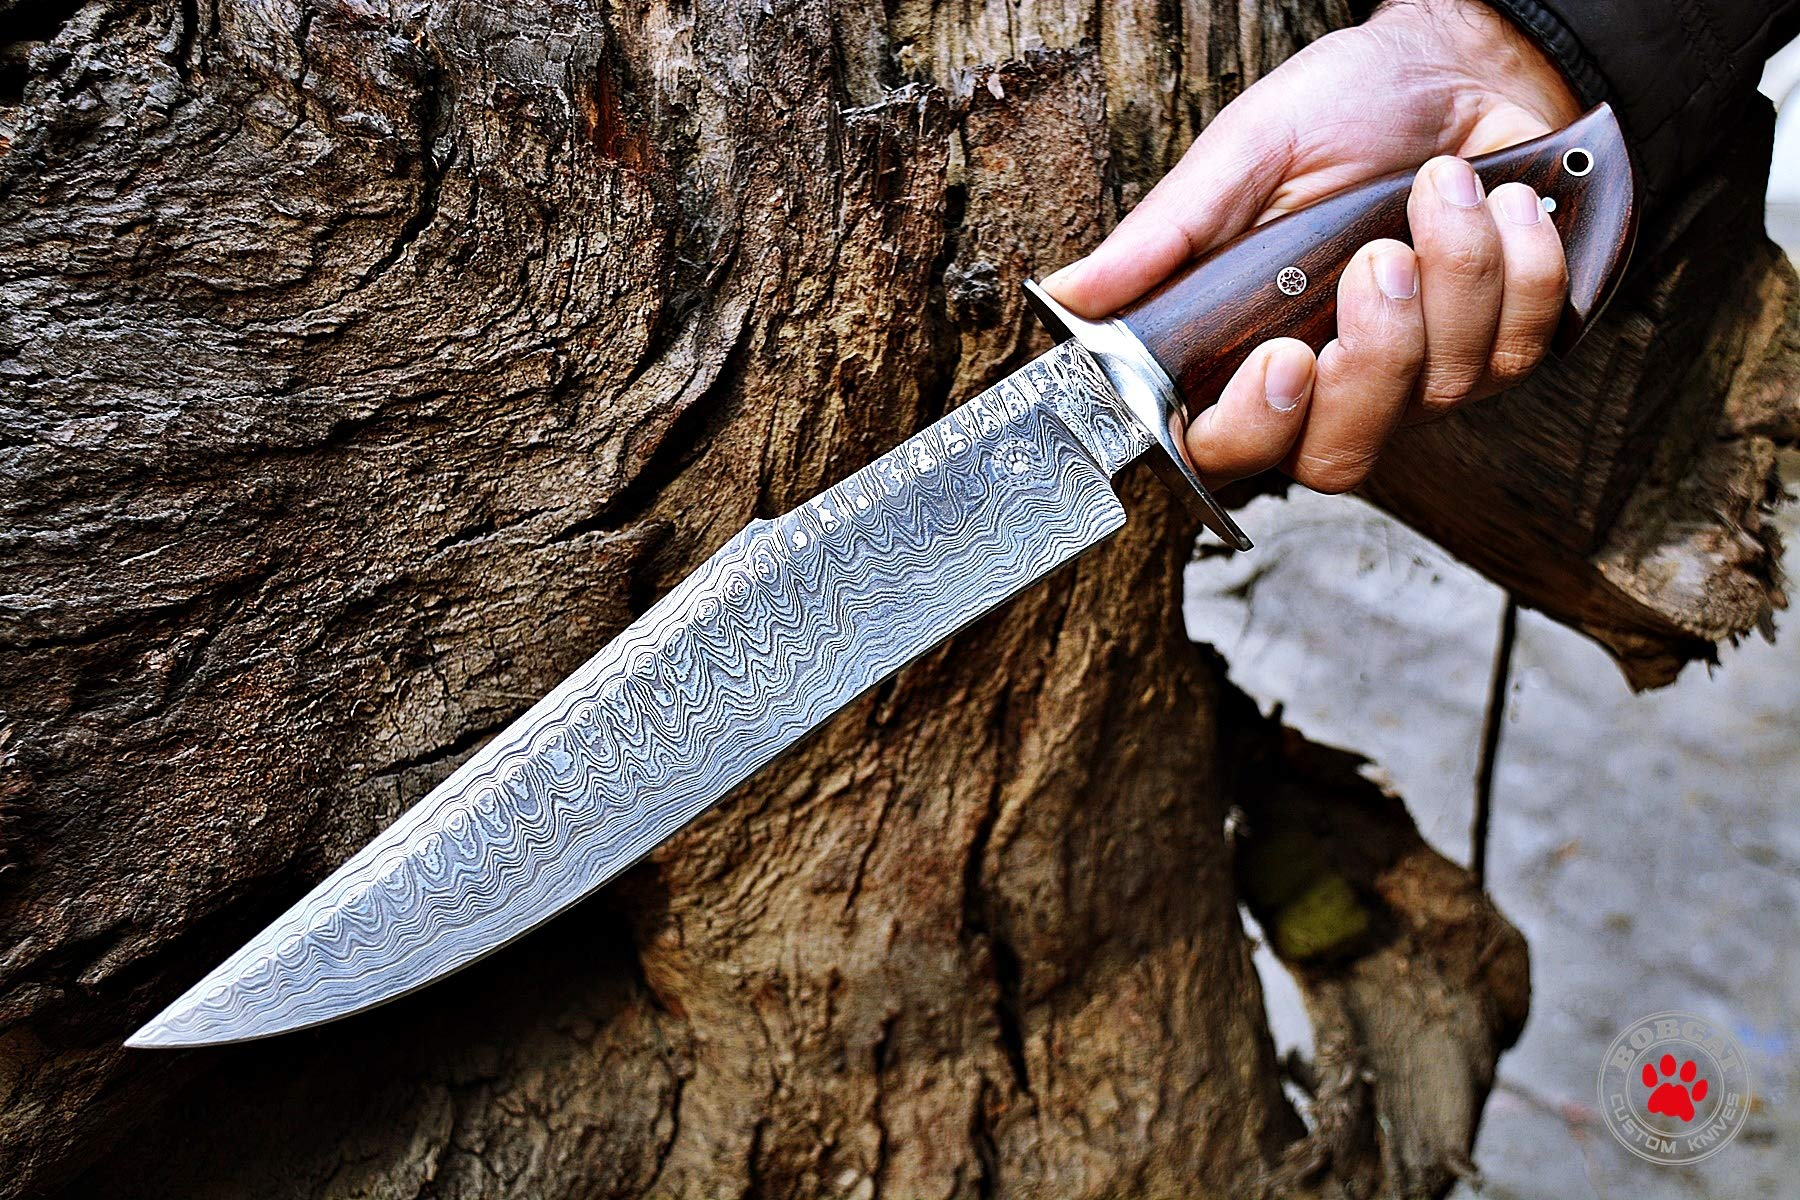 Custom Handmade Bowie Knife Hunting Knife Promotional Price Full Tang Damascus Steel 10'' Solid Walnut Wood Handle with Nice Sheath by Bobcat Knives (Image #4)